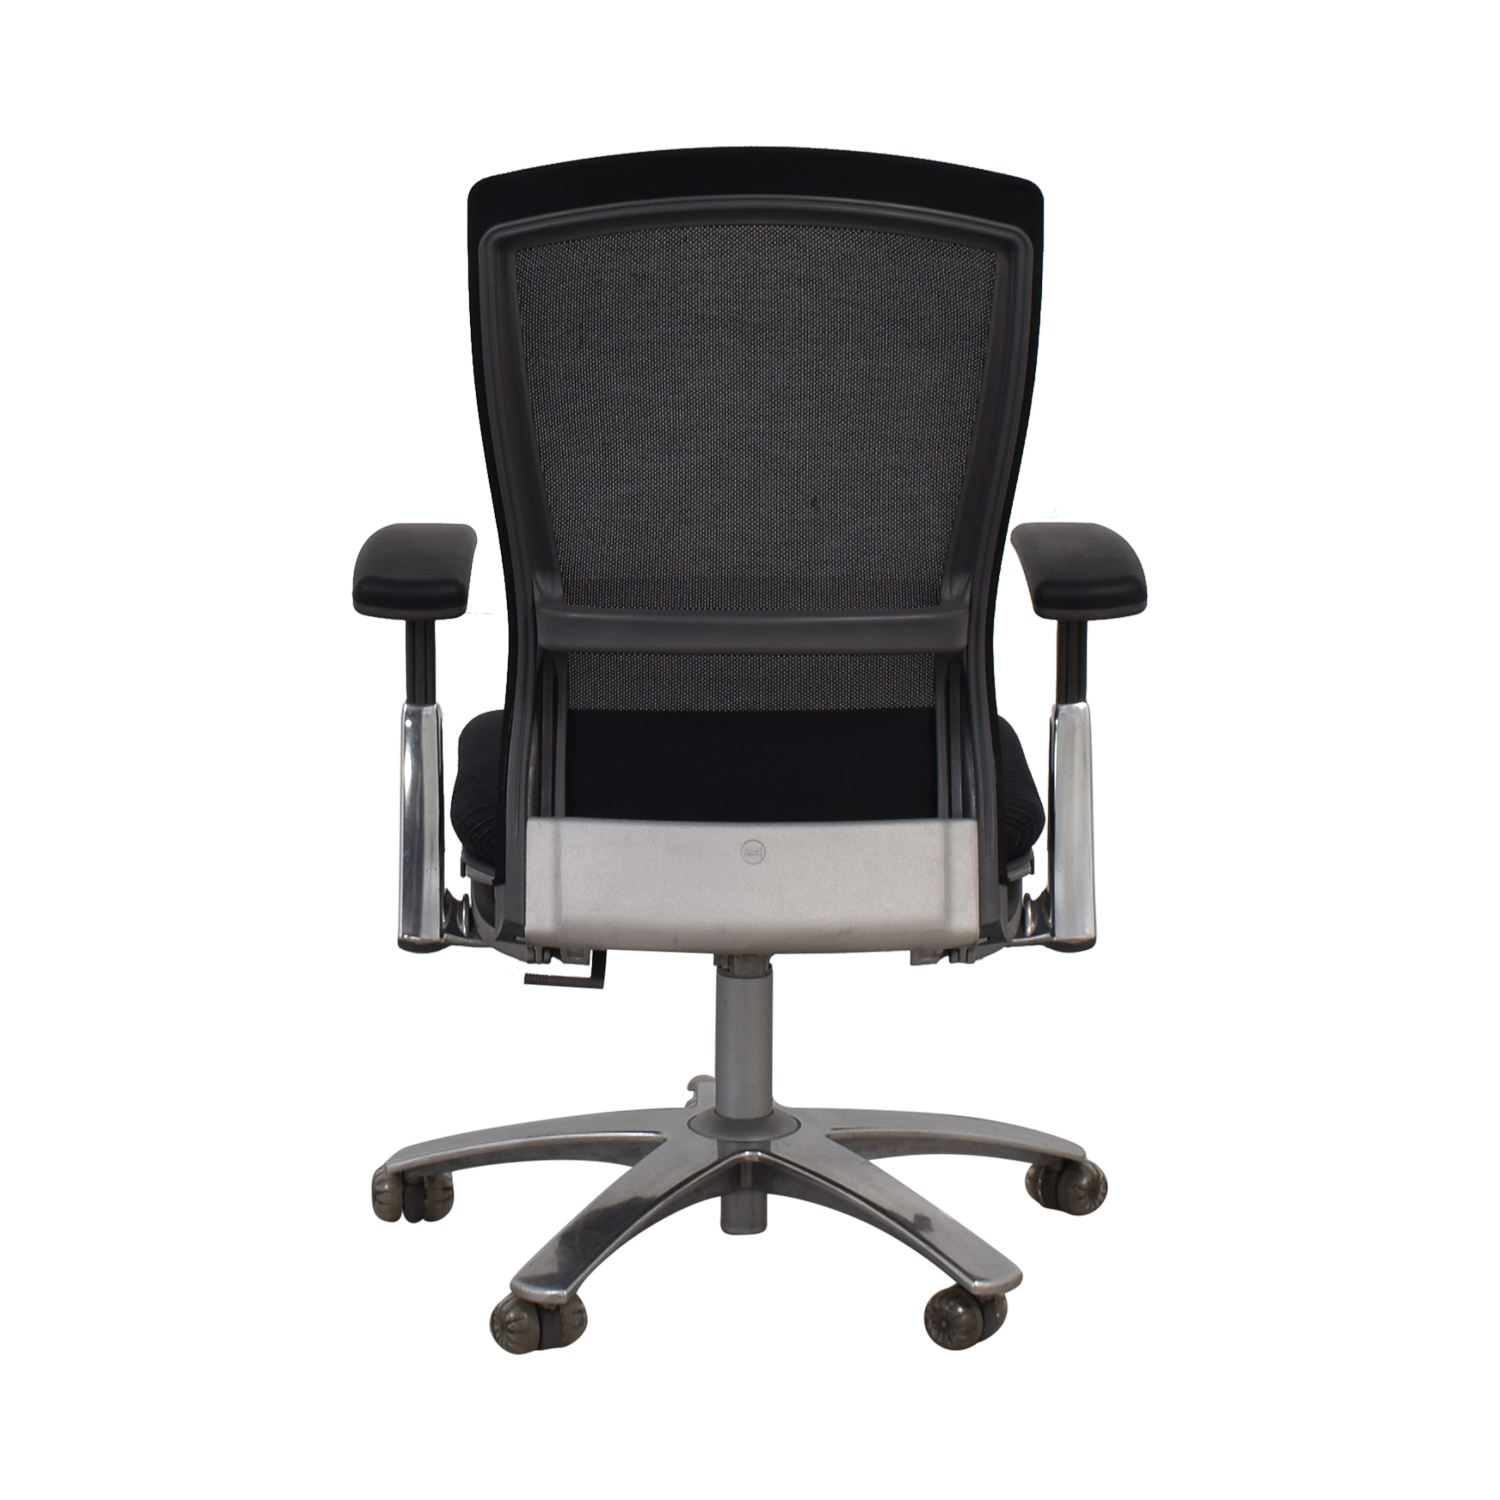 Knoll Knoll Life Black Striped Desk Chair price